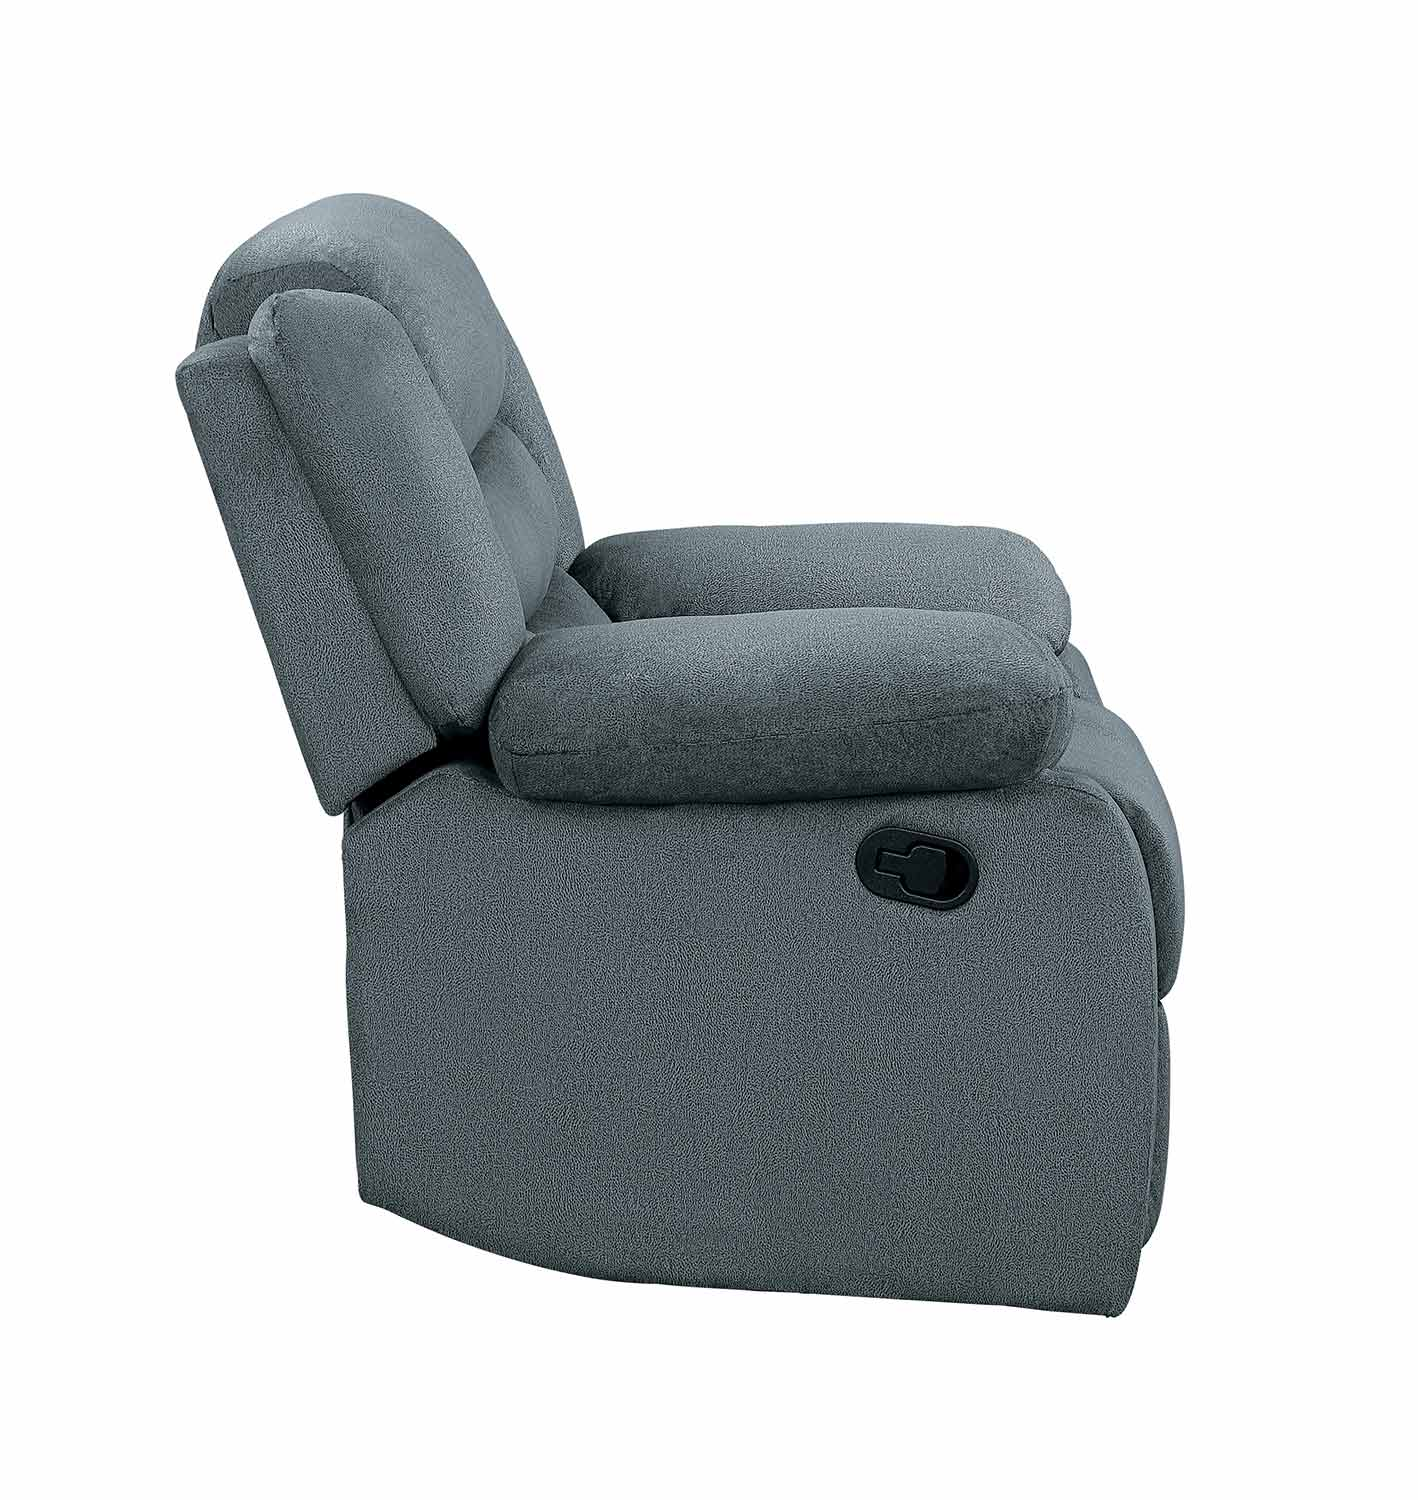 Homelegance Discus Reclining Chair - Gray